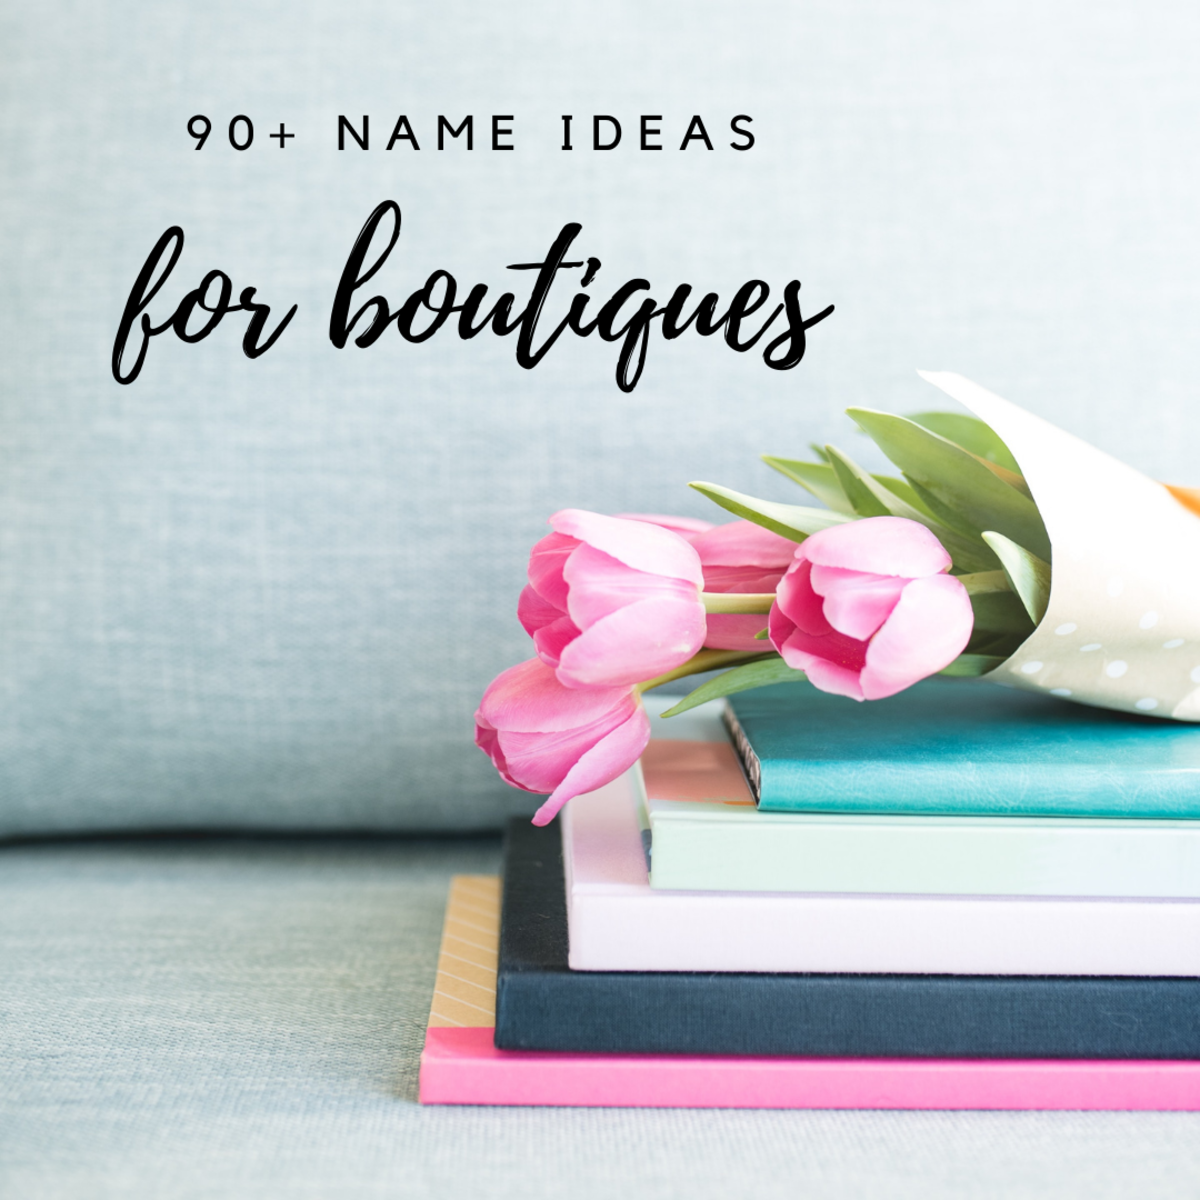 Find the perfect name for your boutique!